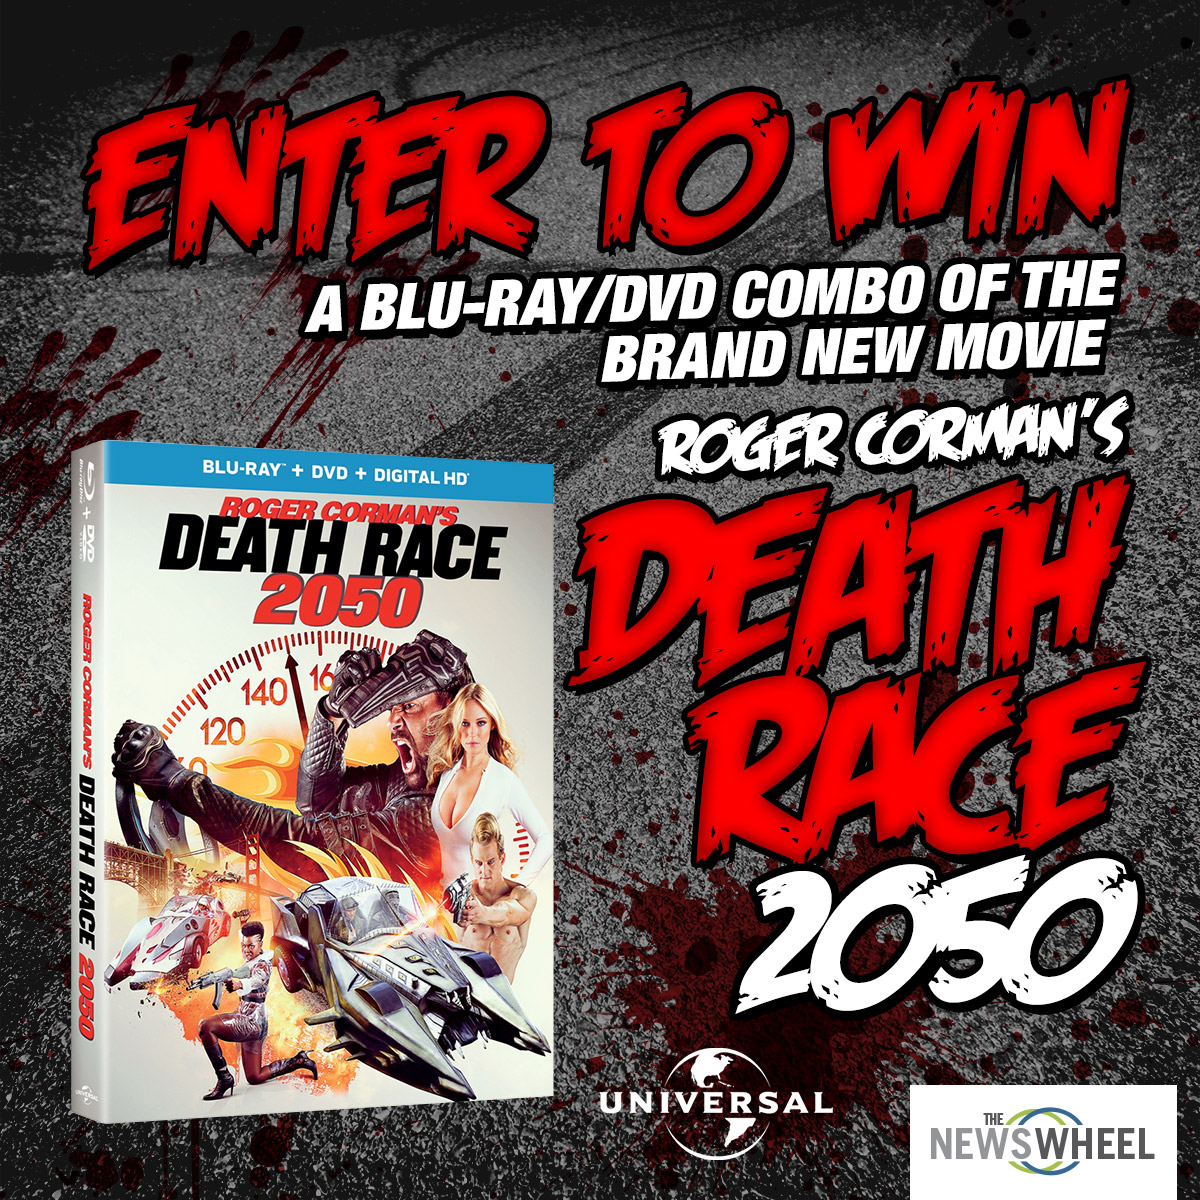 BLU-RAY GIVEAWAY: Enter To Win The New Movie Roger Corman